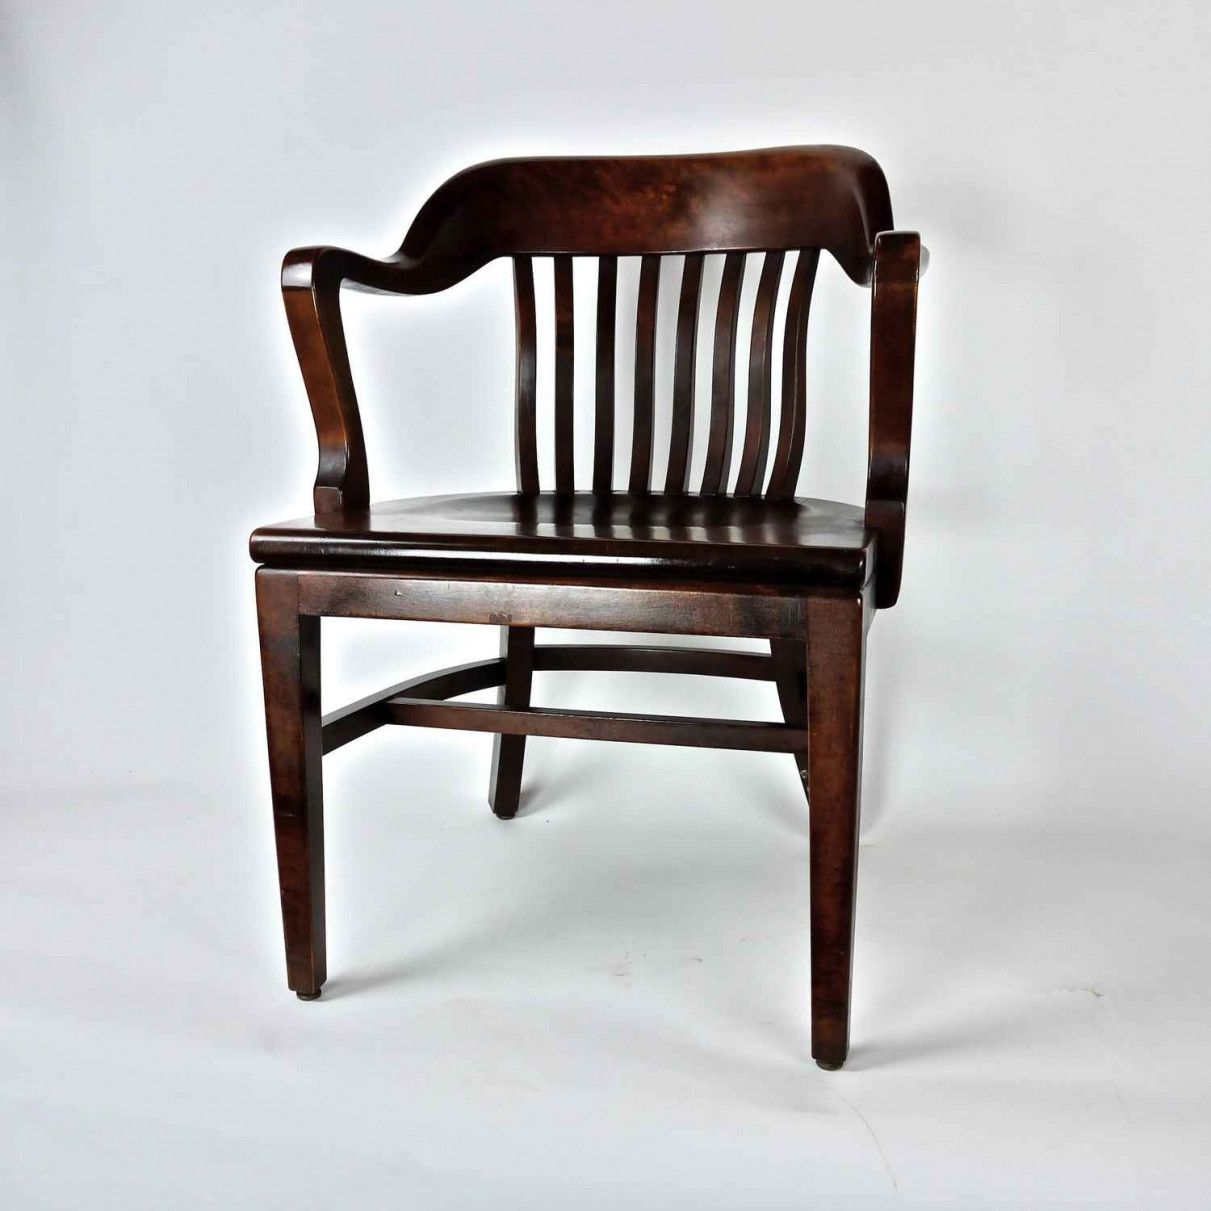 Vintage Office Chair for Sale - ashley Furniture Home Office Check more at  http:/ - Vintage Office Chair For Sale - Ashley Furniture Home Office Check